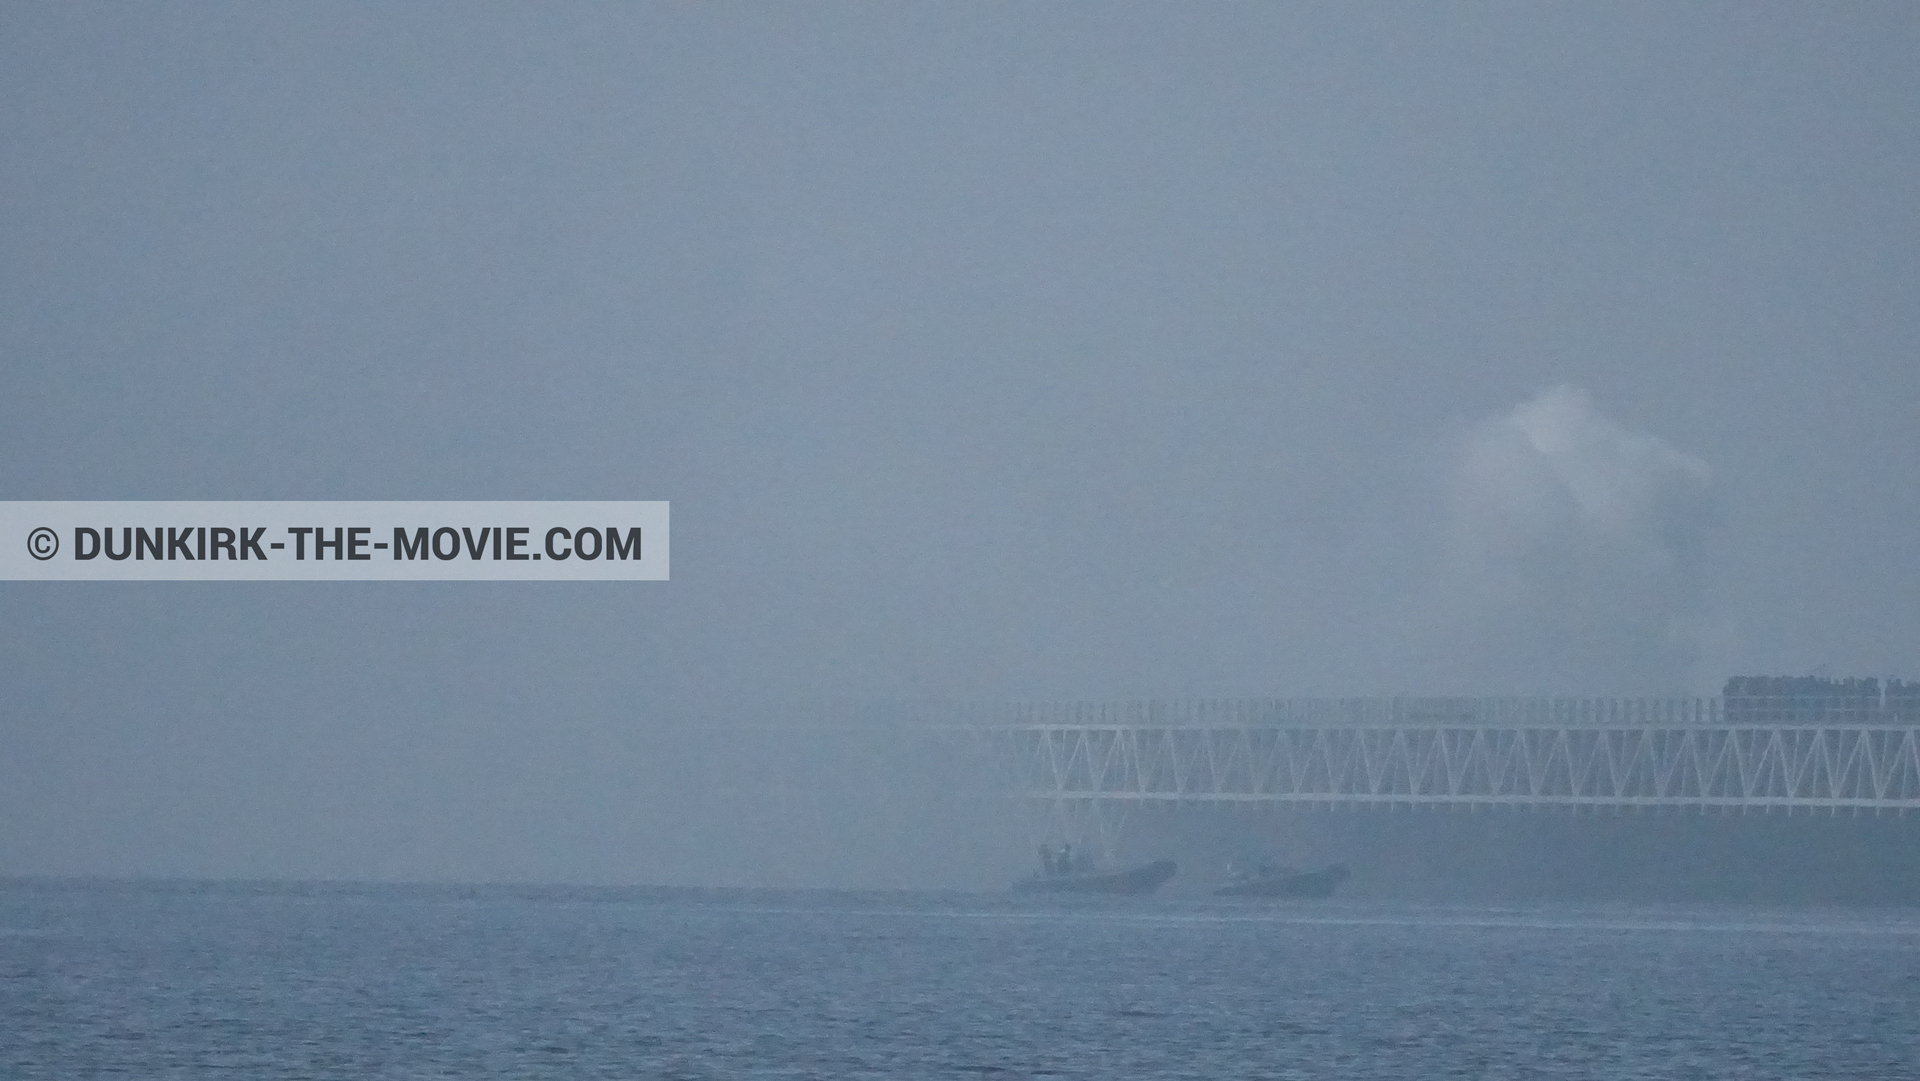 Picture with white smoke, EST pier, inflatable dinghy,  from behind the scene of the Dunkirk movie by Nolan